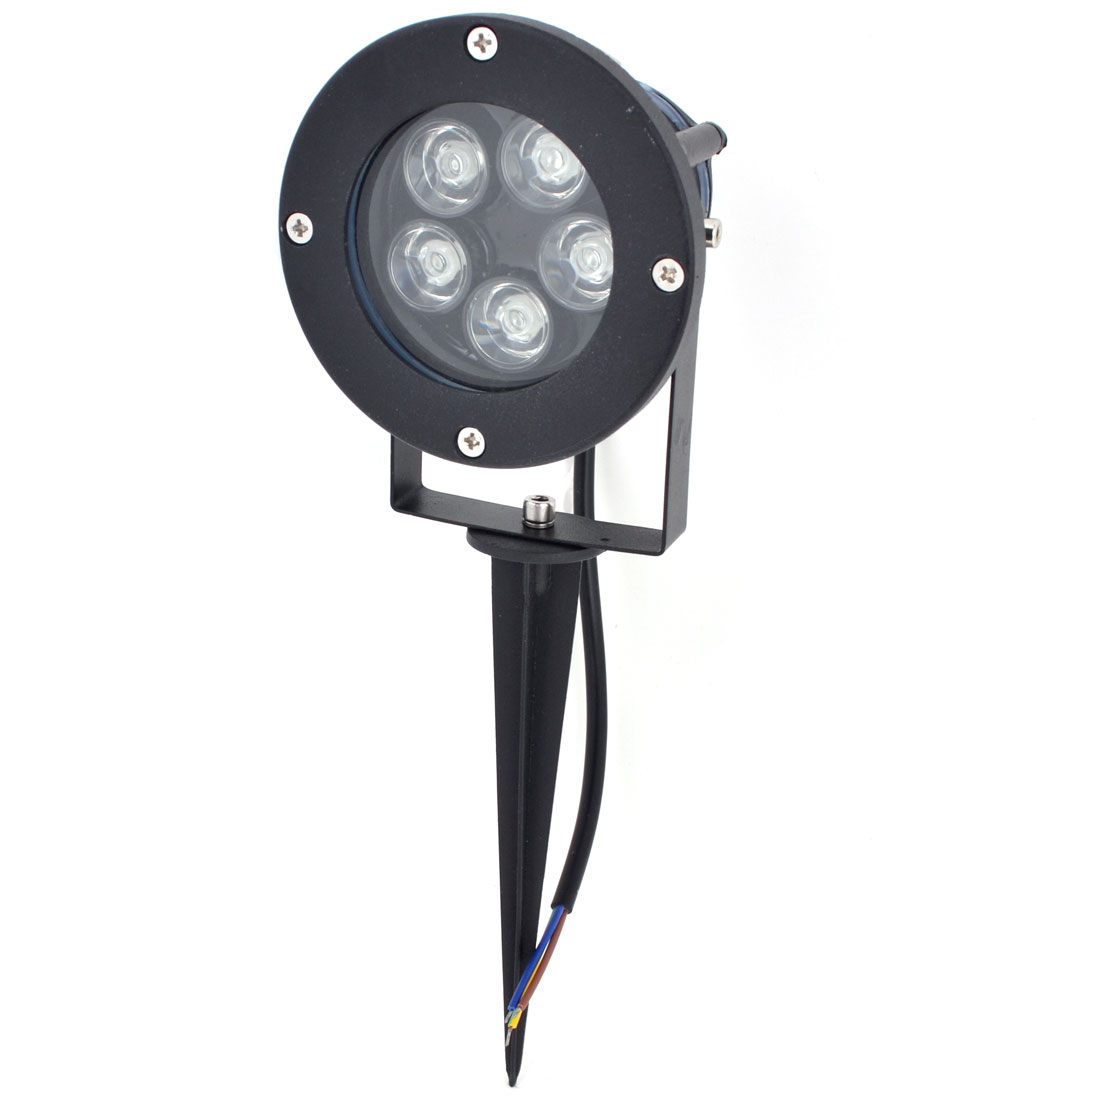 AC85-265V 10W 5-LEDs 500-550LM Green LED Light Garden Spotlight Lamp